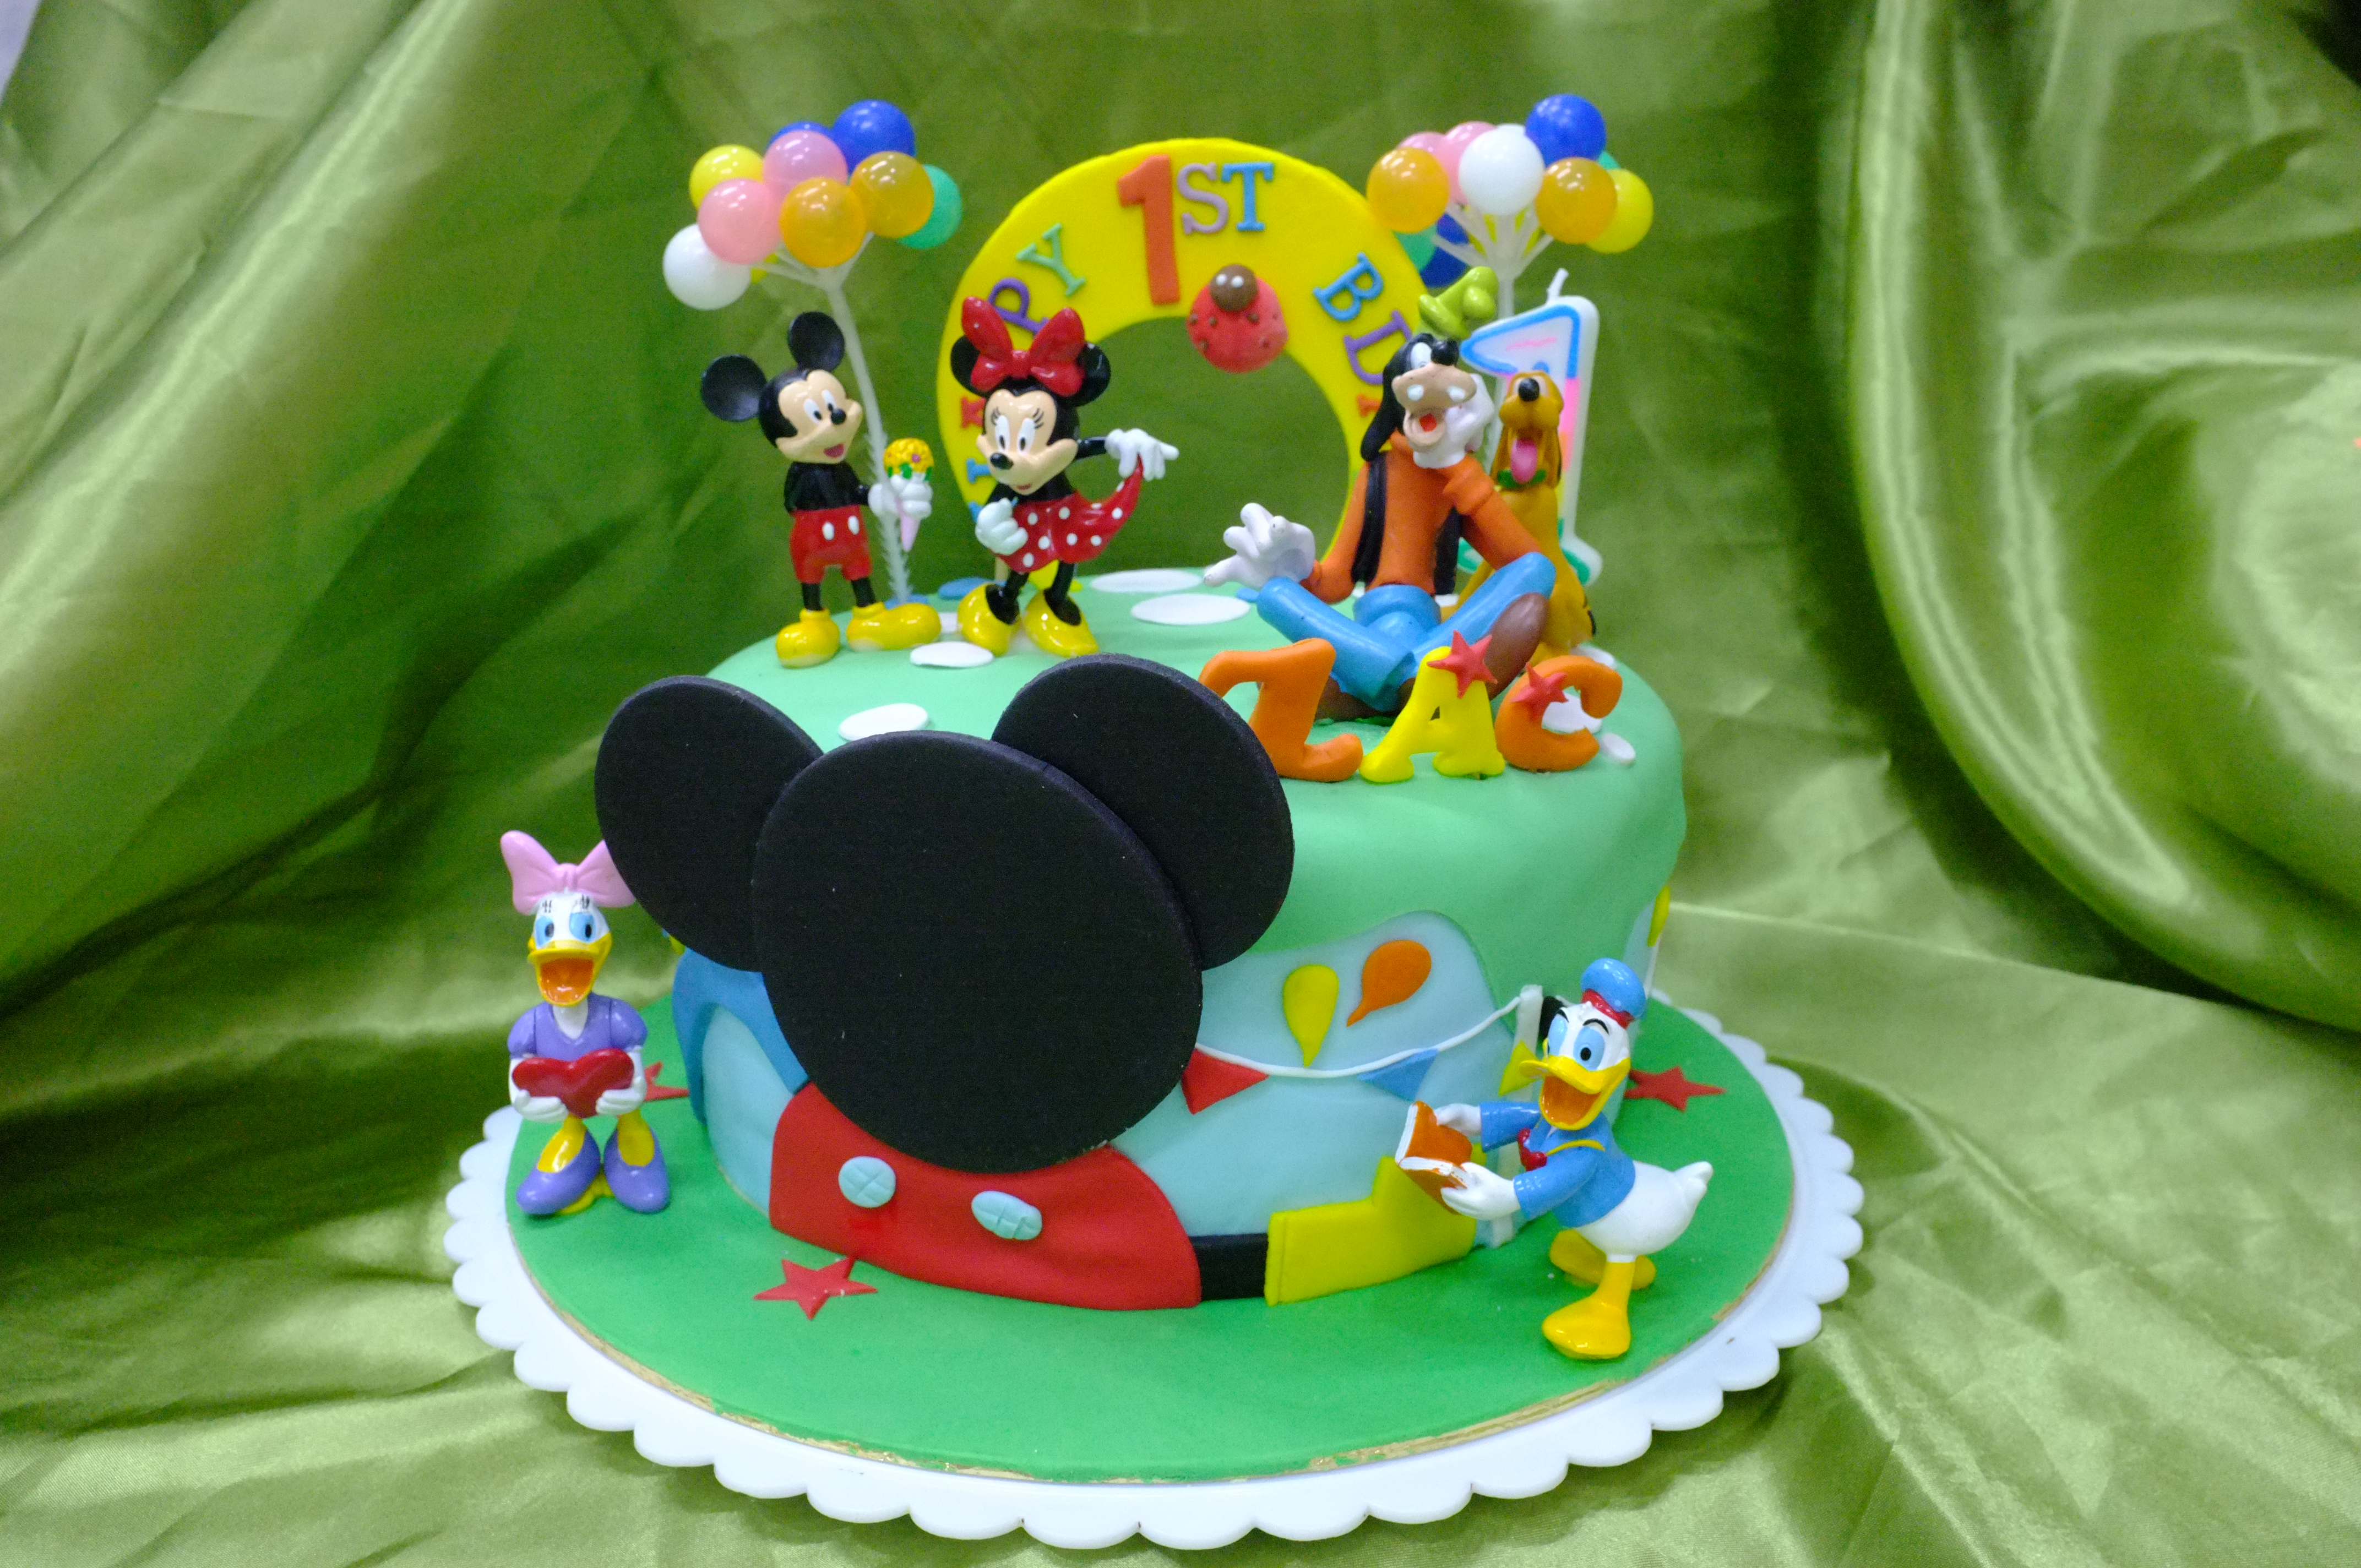 Mickey Mouse Clubhouse Cake 3